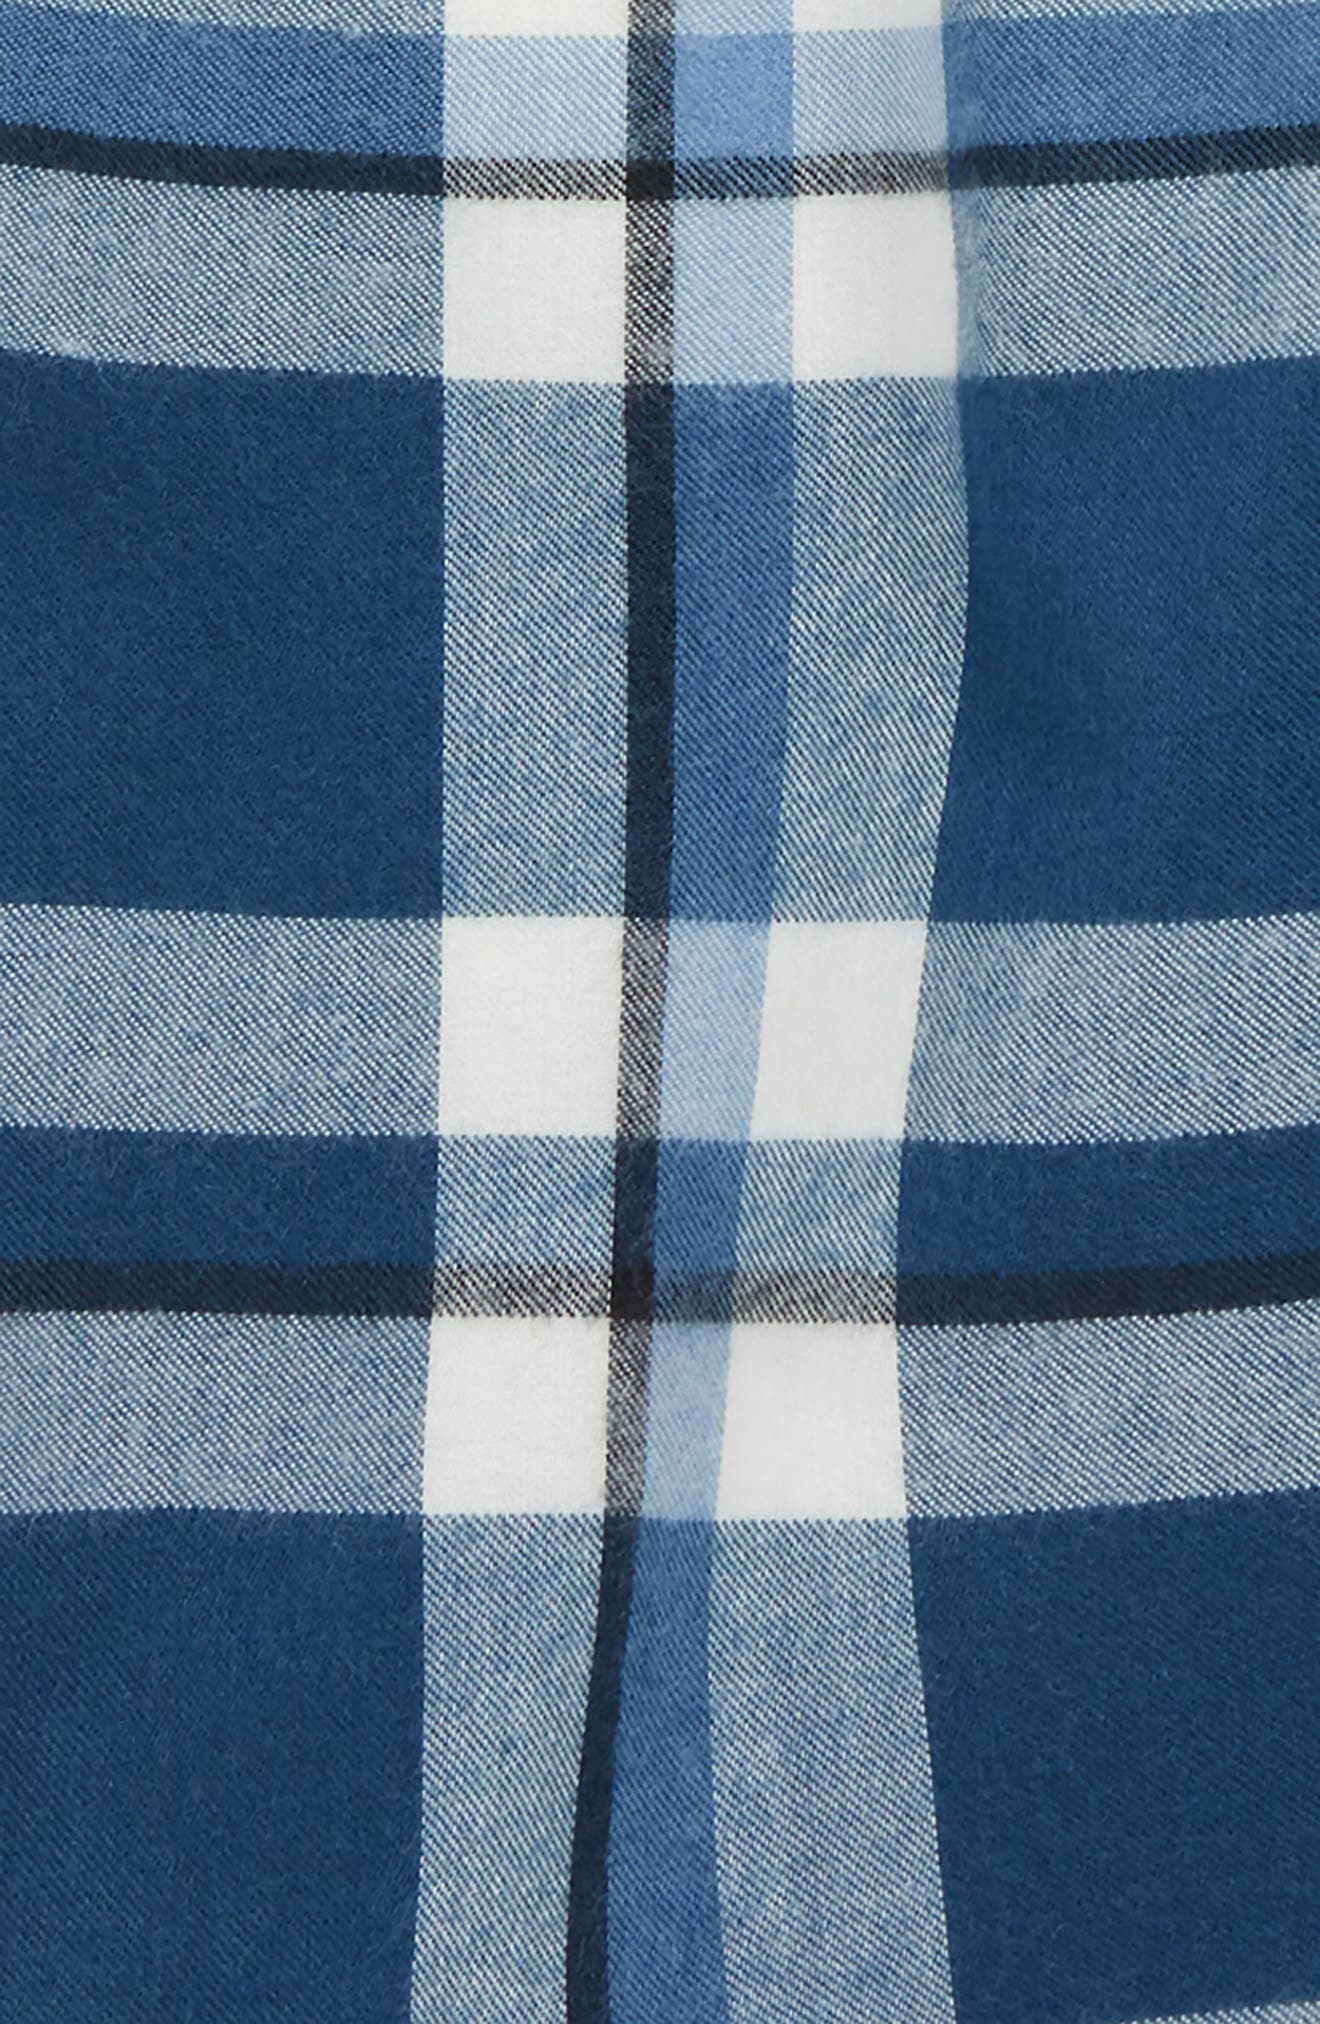 Plaid Flannel Sleep Shorts,                             Alternate thumbnail 2, color,                             BLUE WING- IVORY PLAID